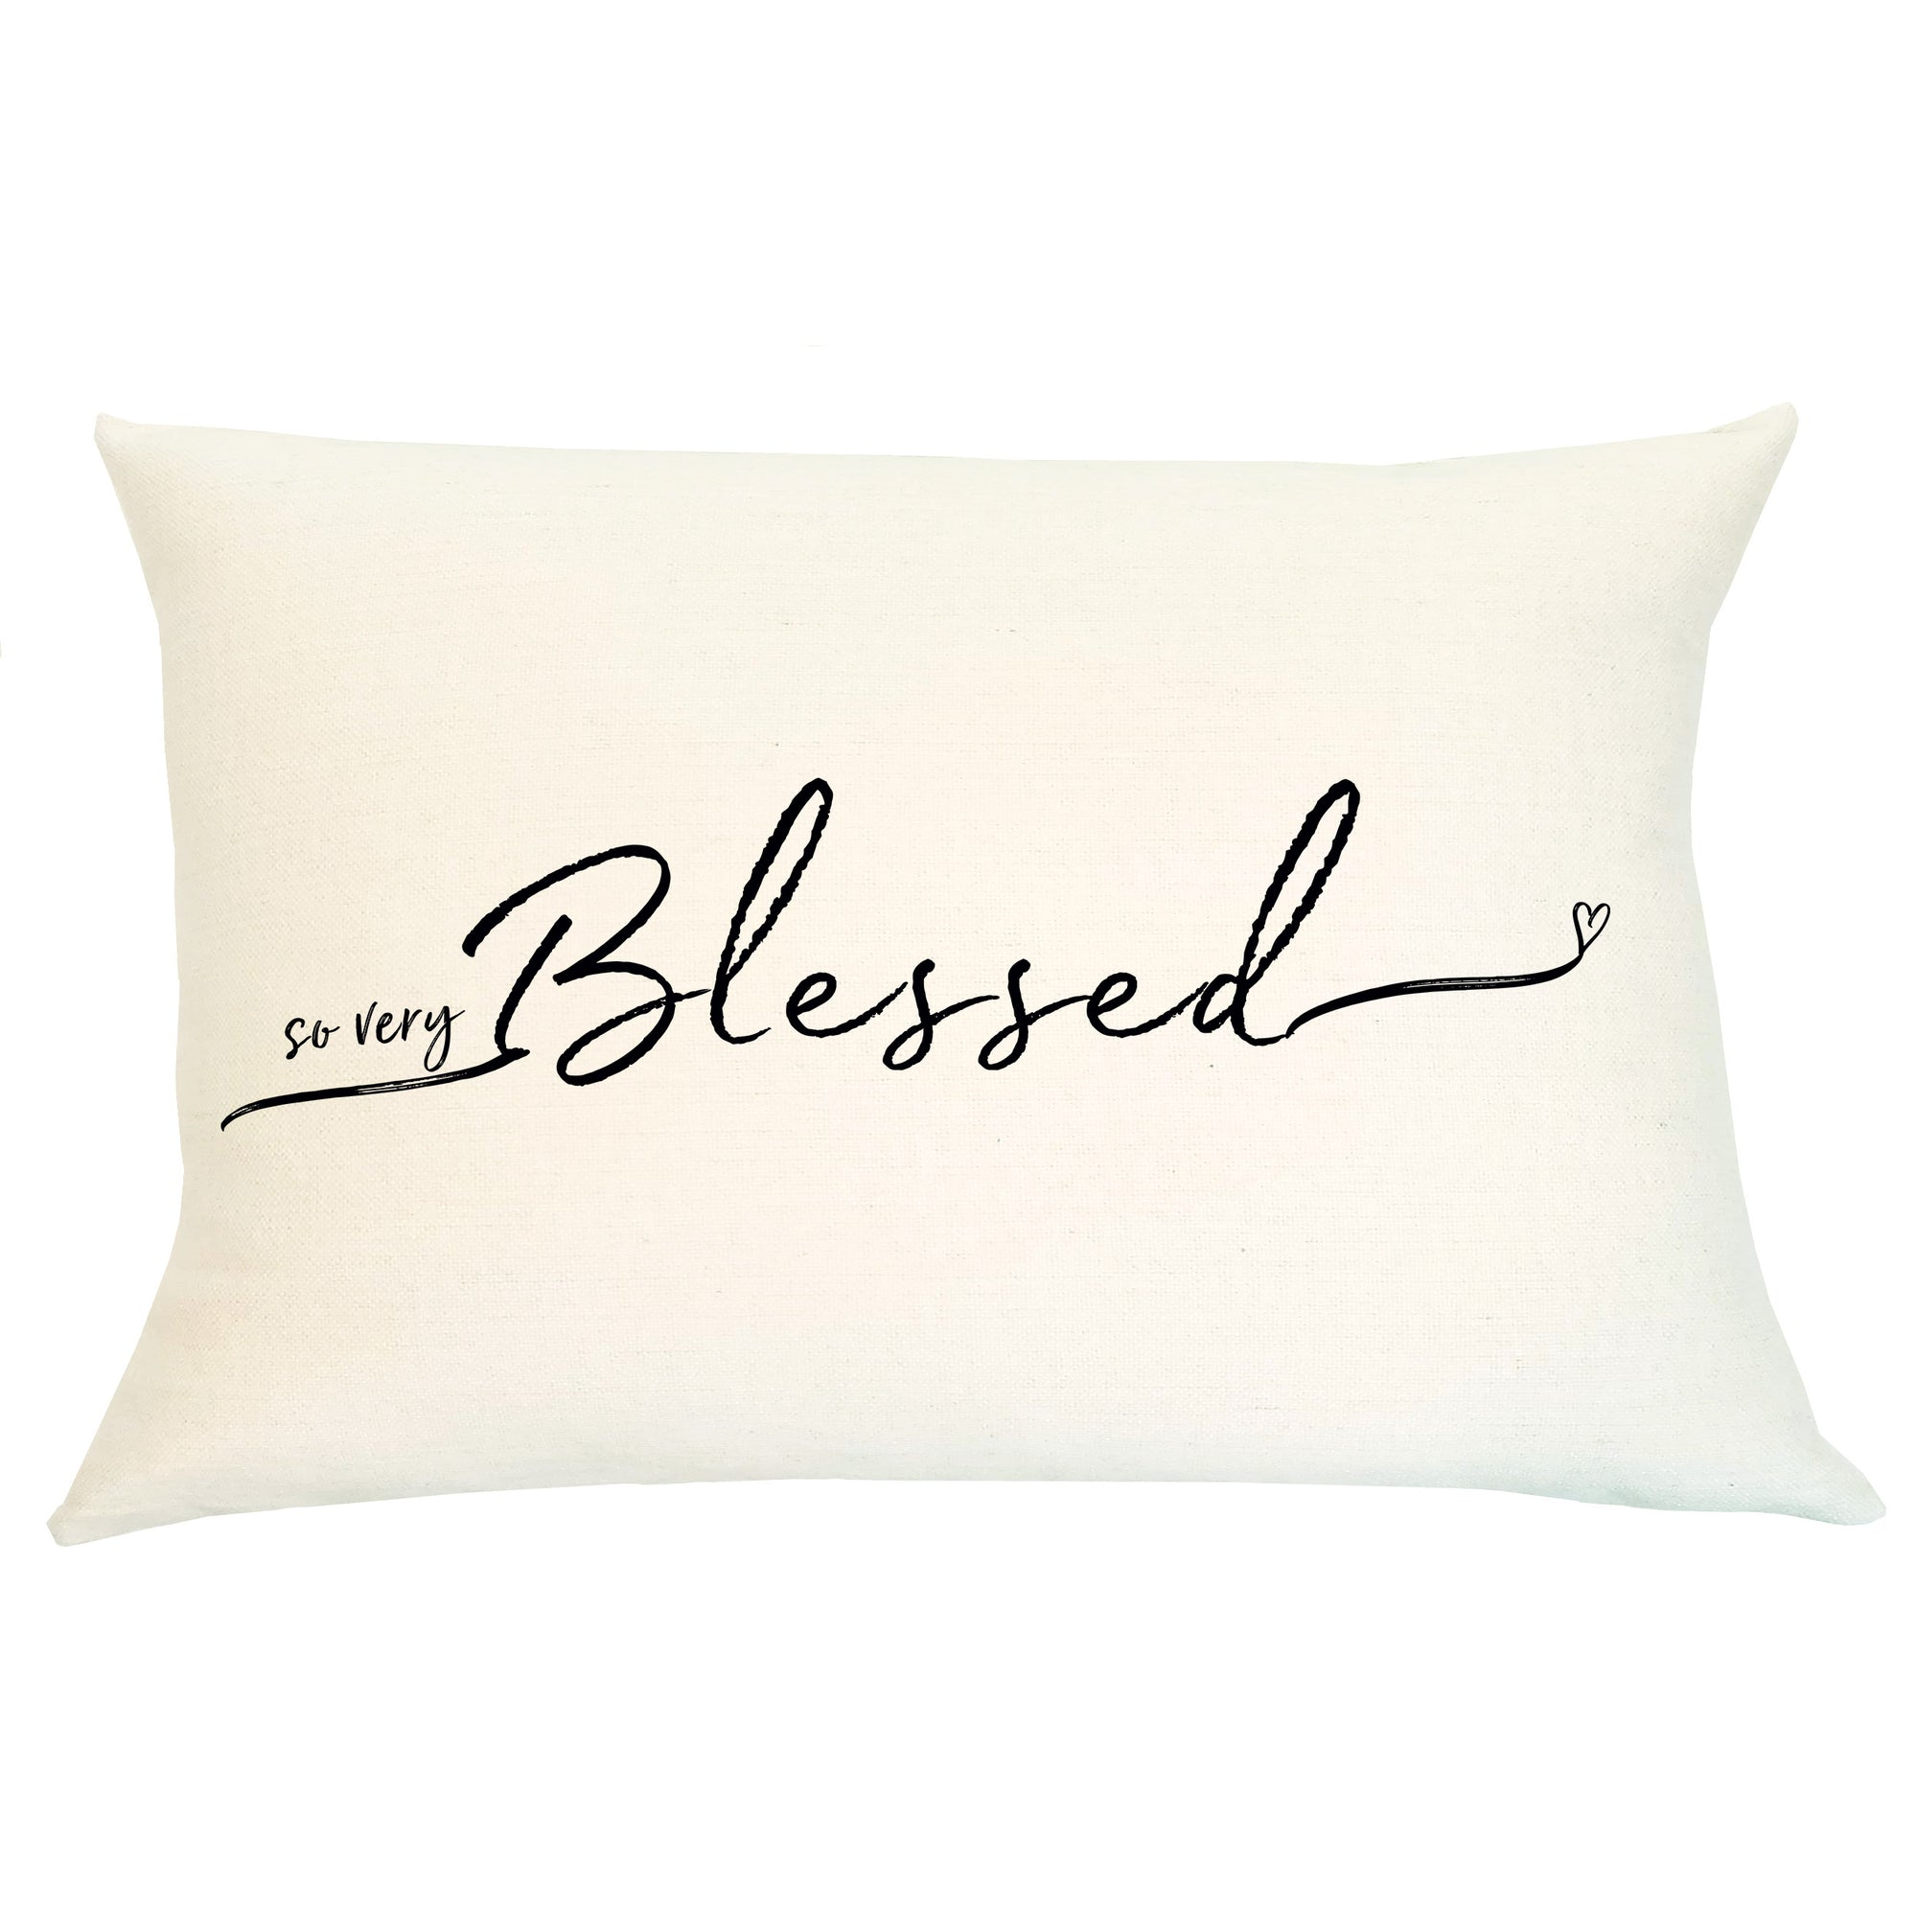 Pillow Lumbar - So Very Blessed - Insert Included